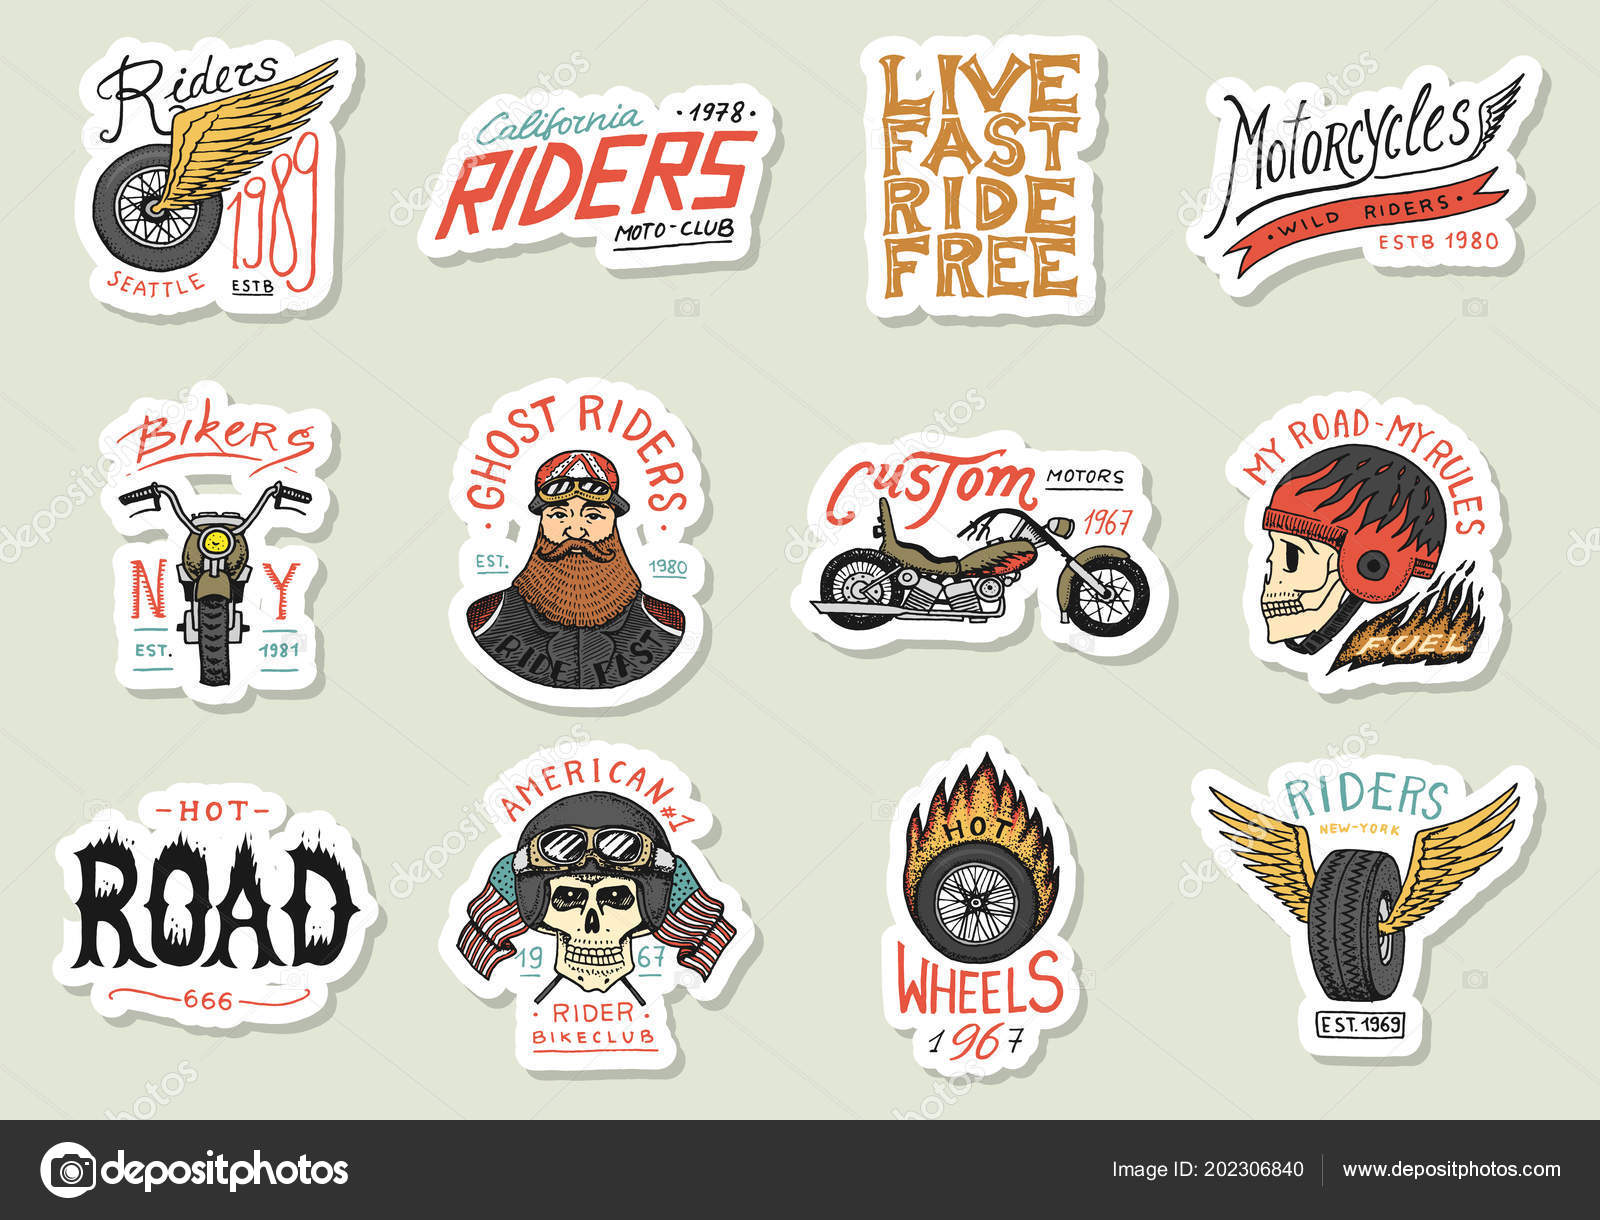 Biker club stickers templates vintage custom motorcycle and